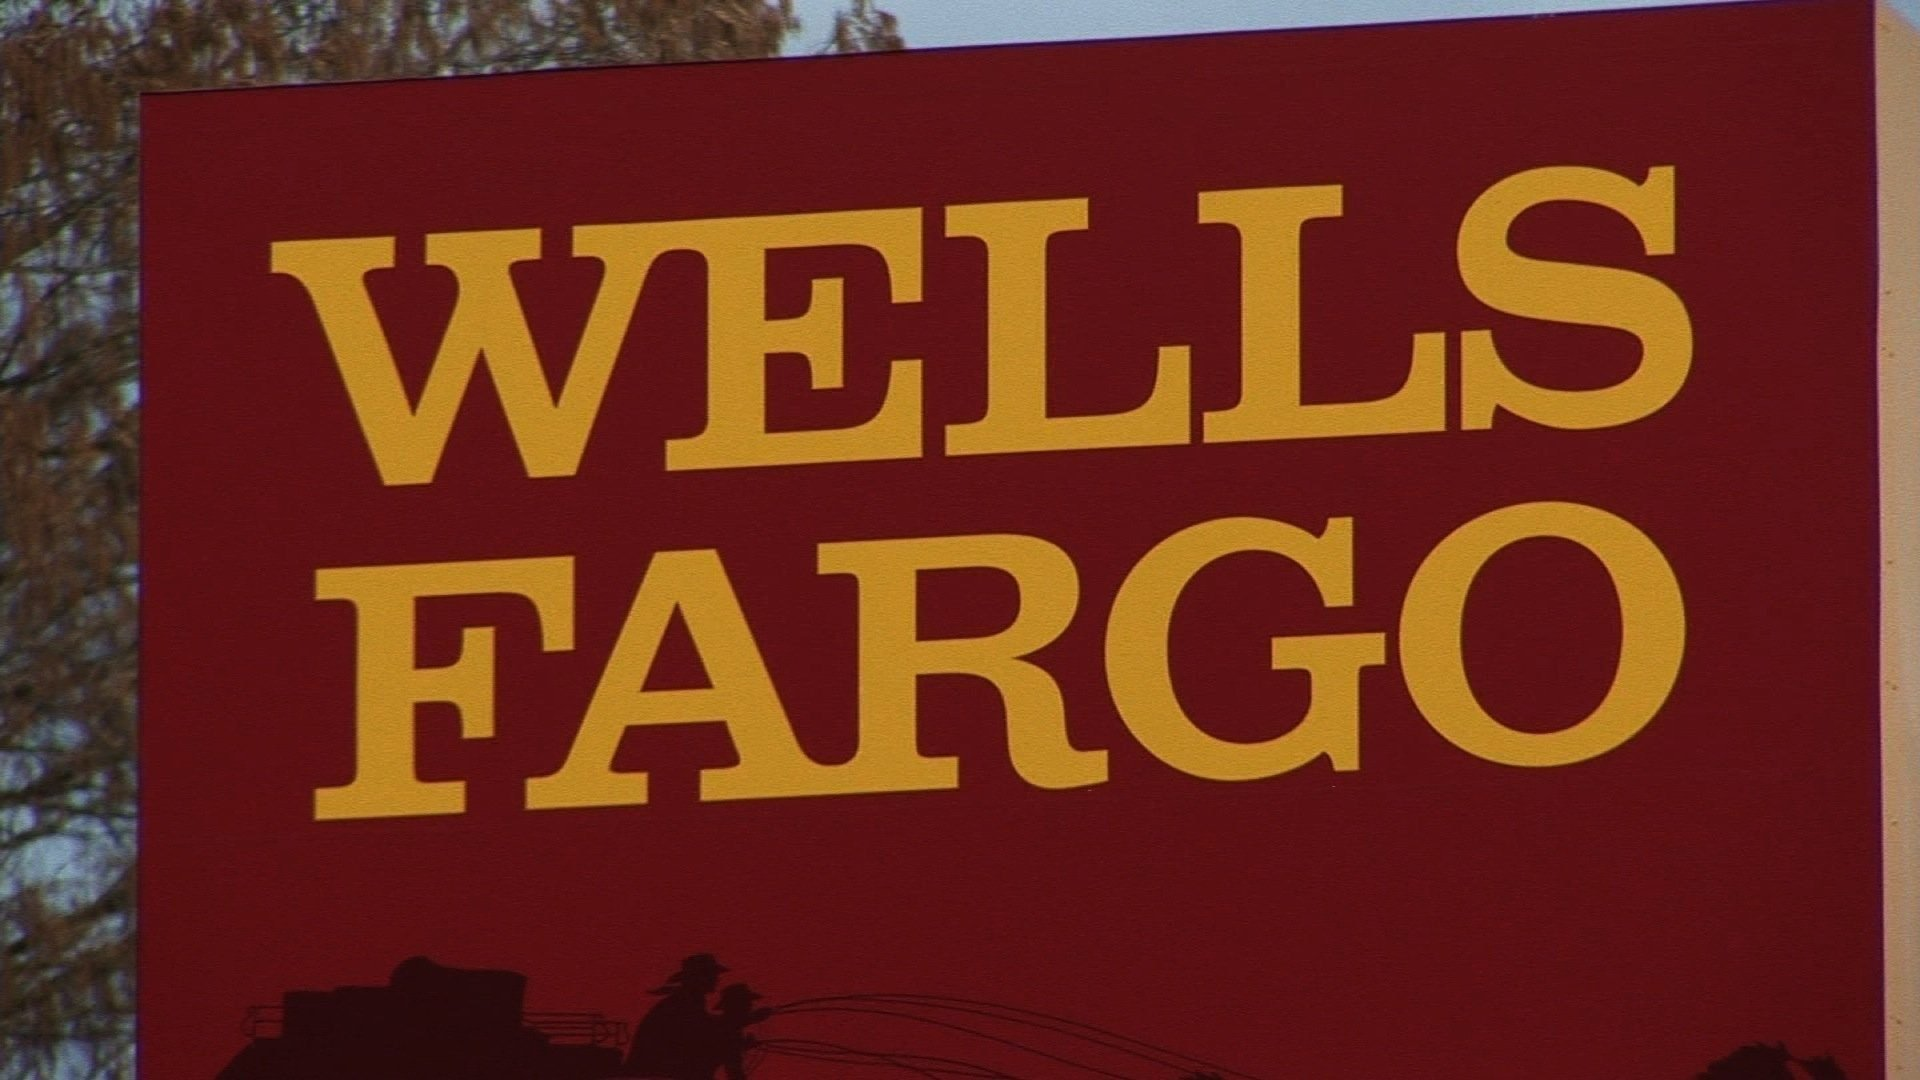 Quantitative Investment Management LLC Holds Stake in Wells Fargo & Co